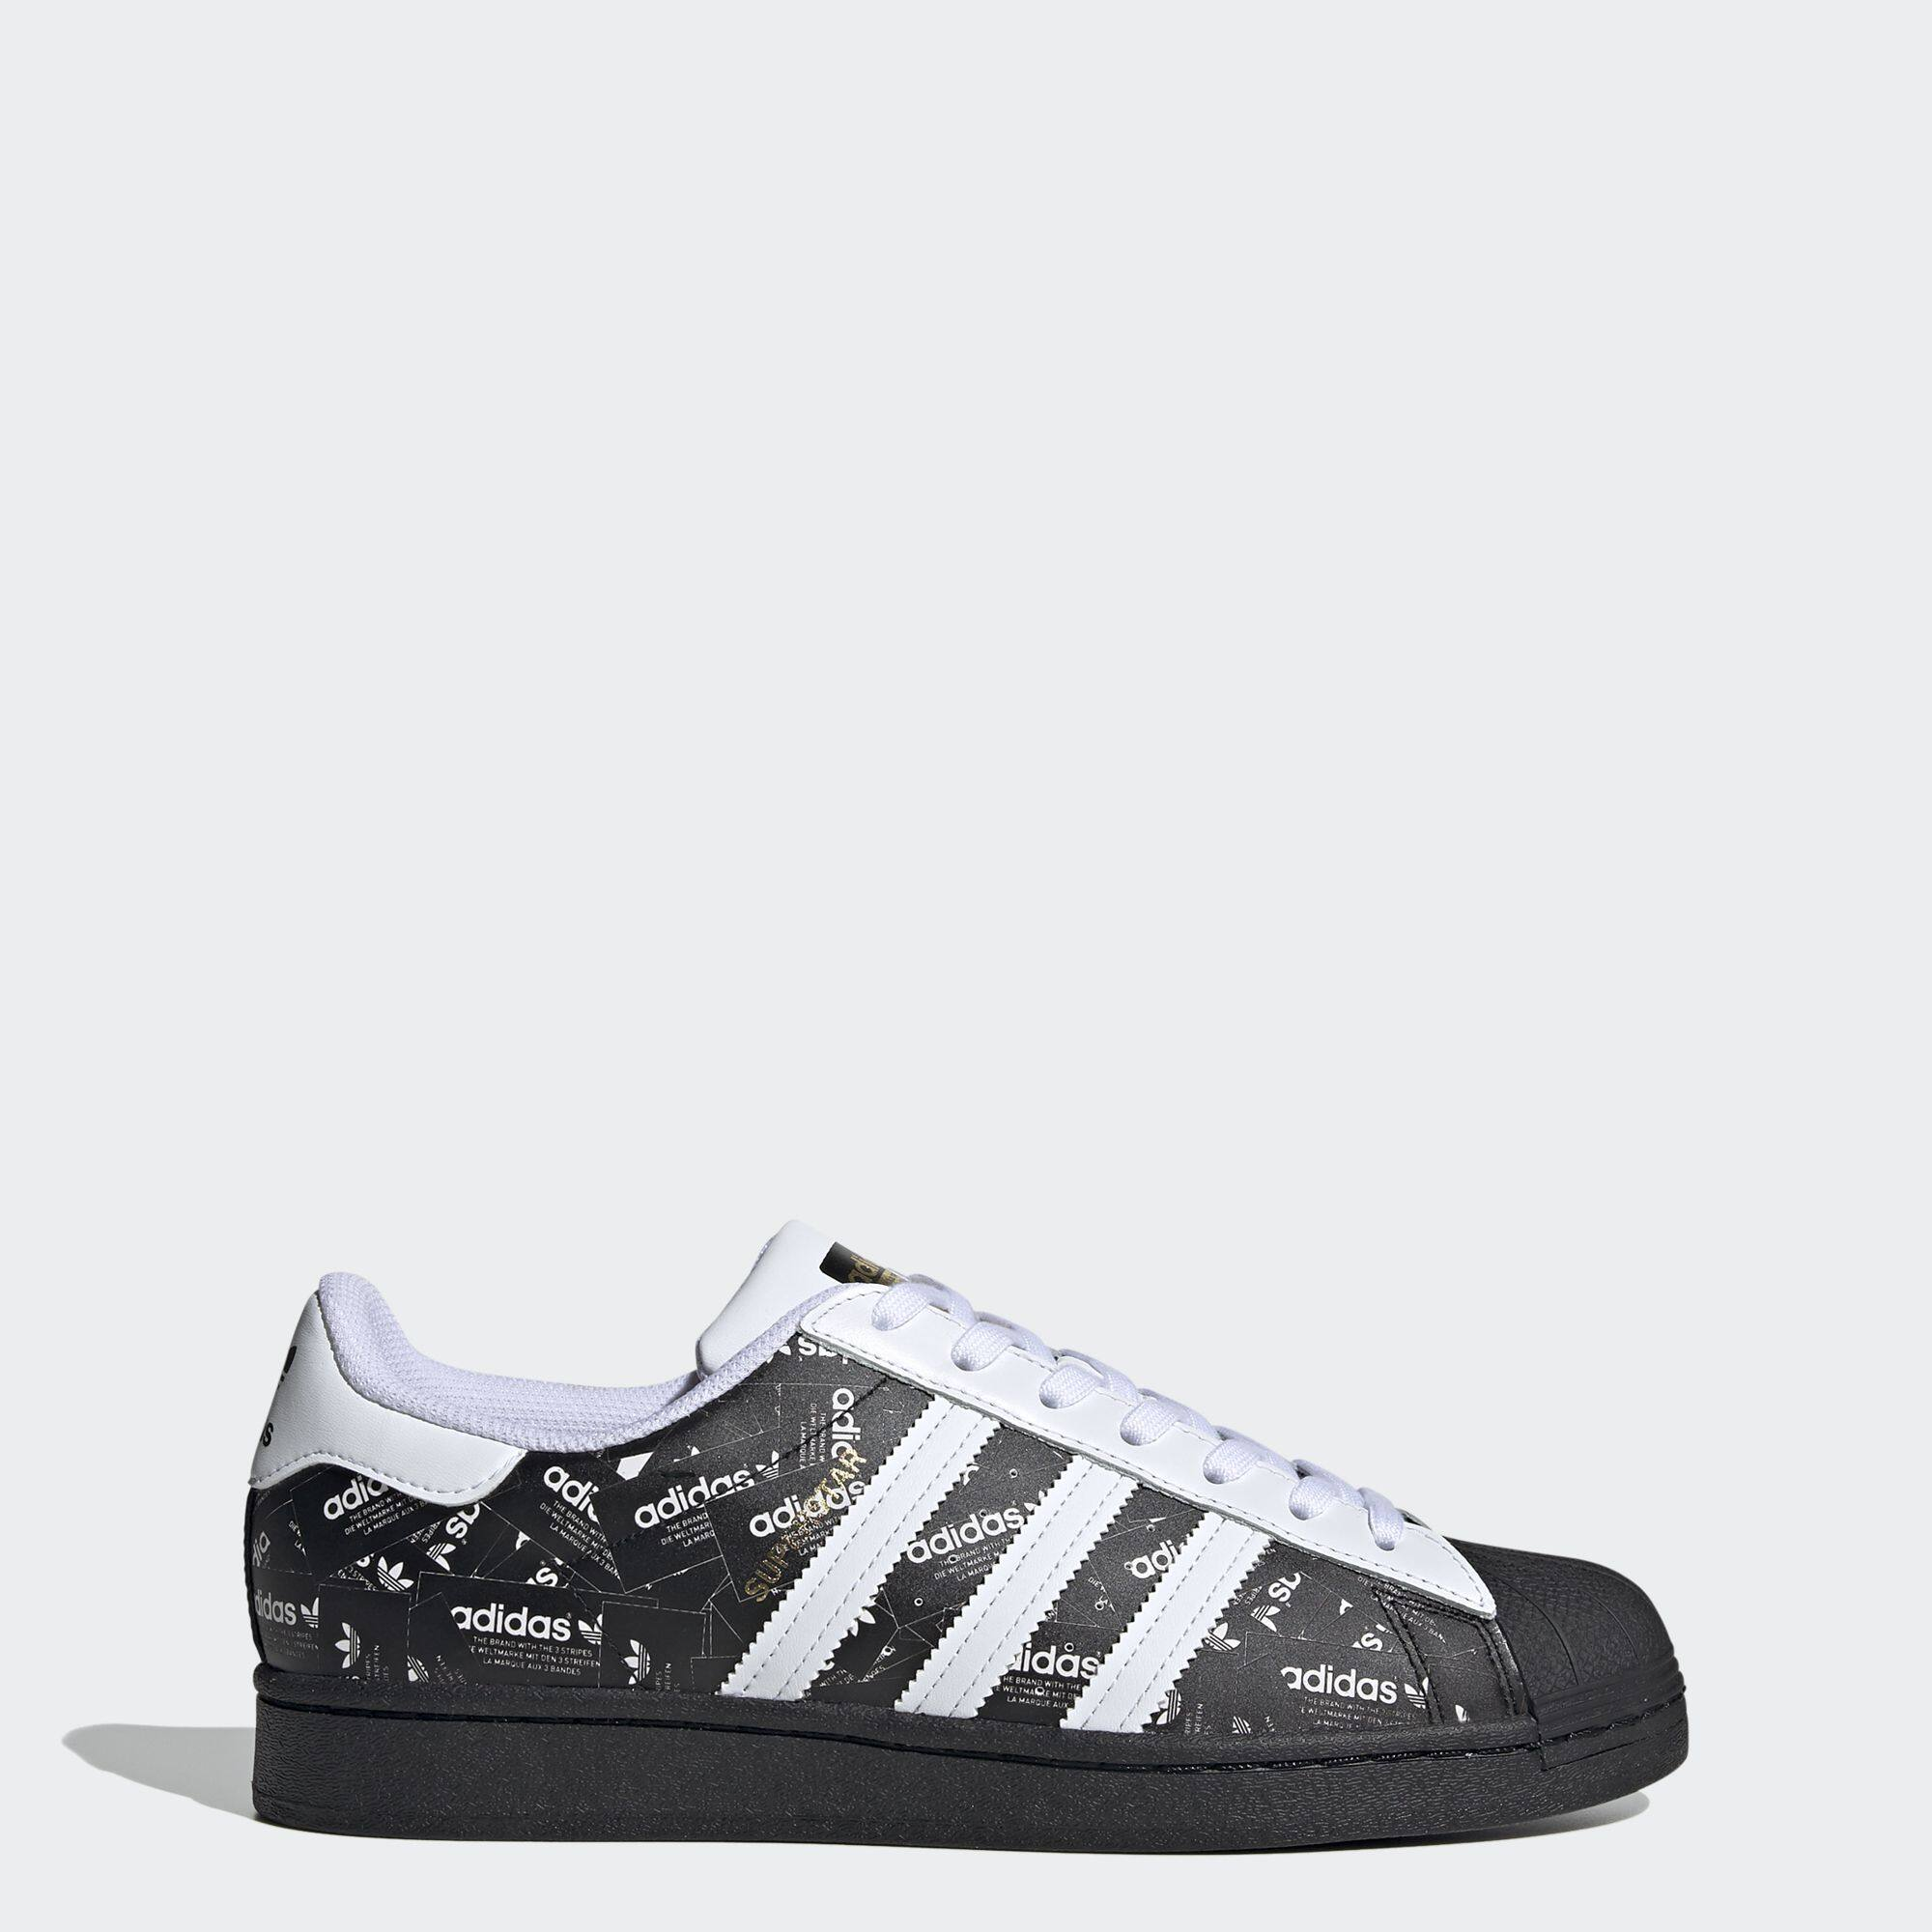 adidas superstar shoes mens, OFF 79%,Buy!